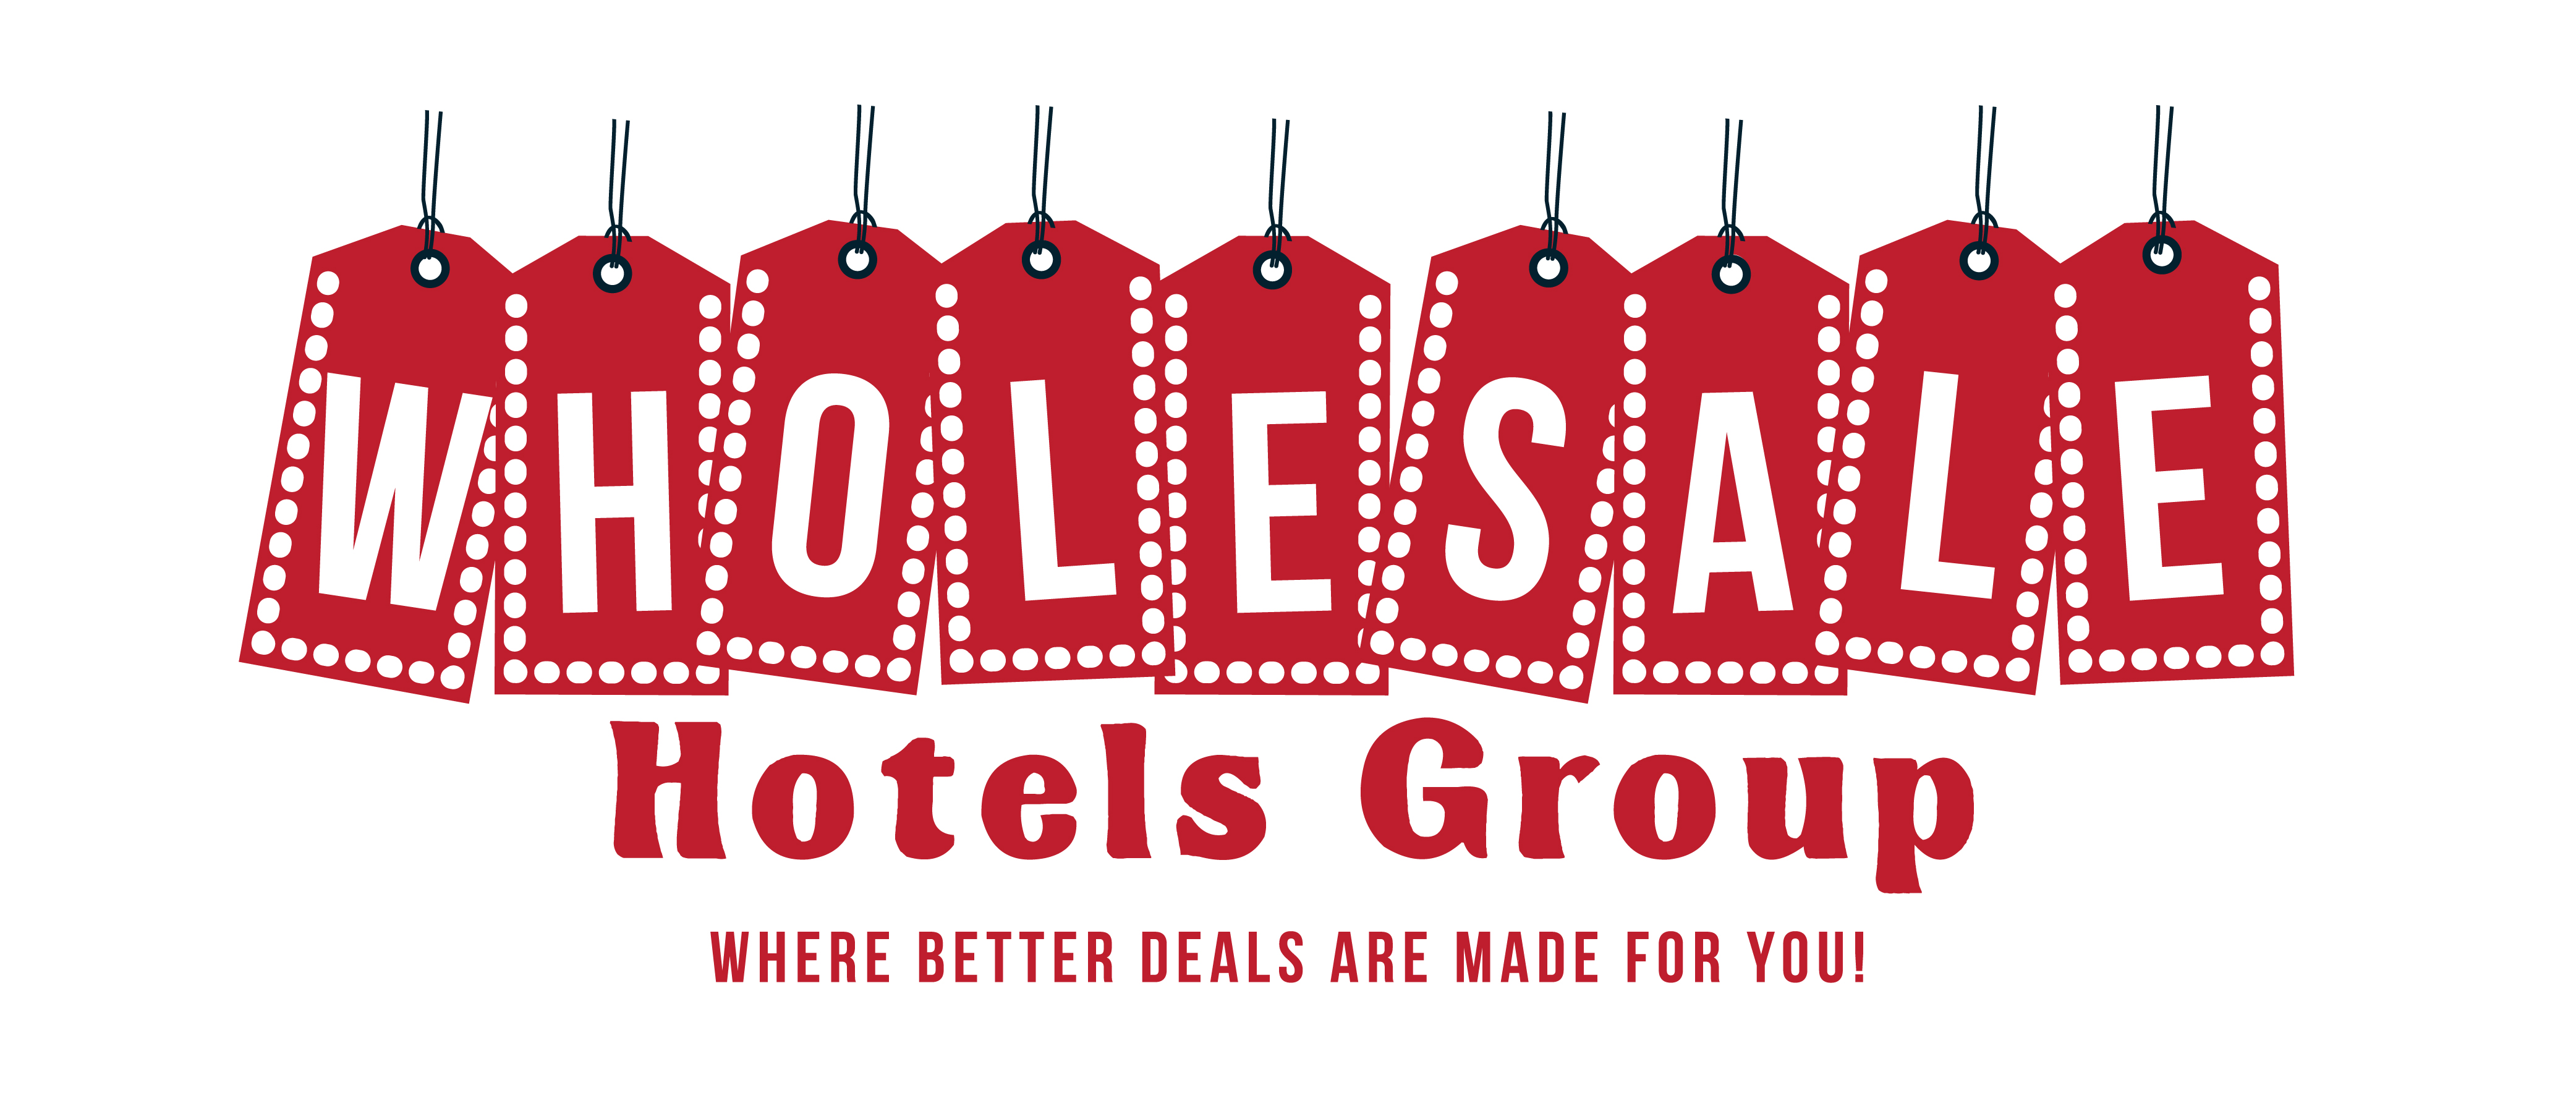 Wholesale Hotels Group - Travel Agency Services